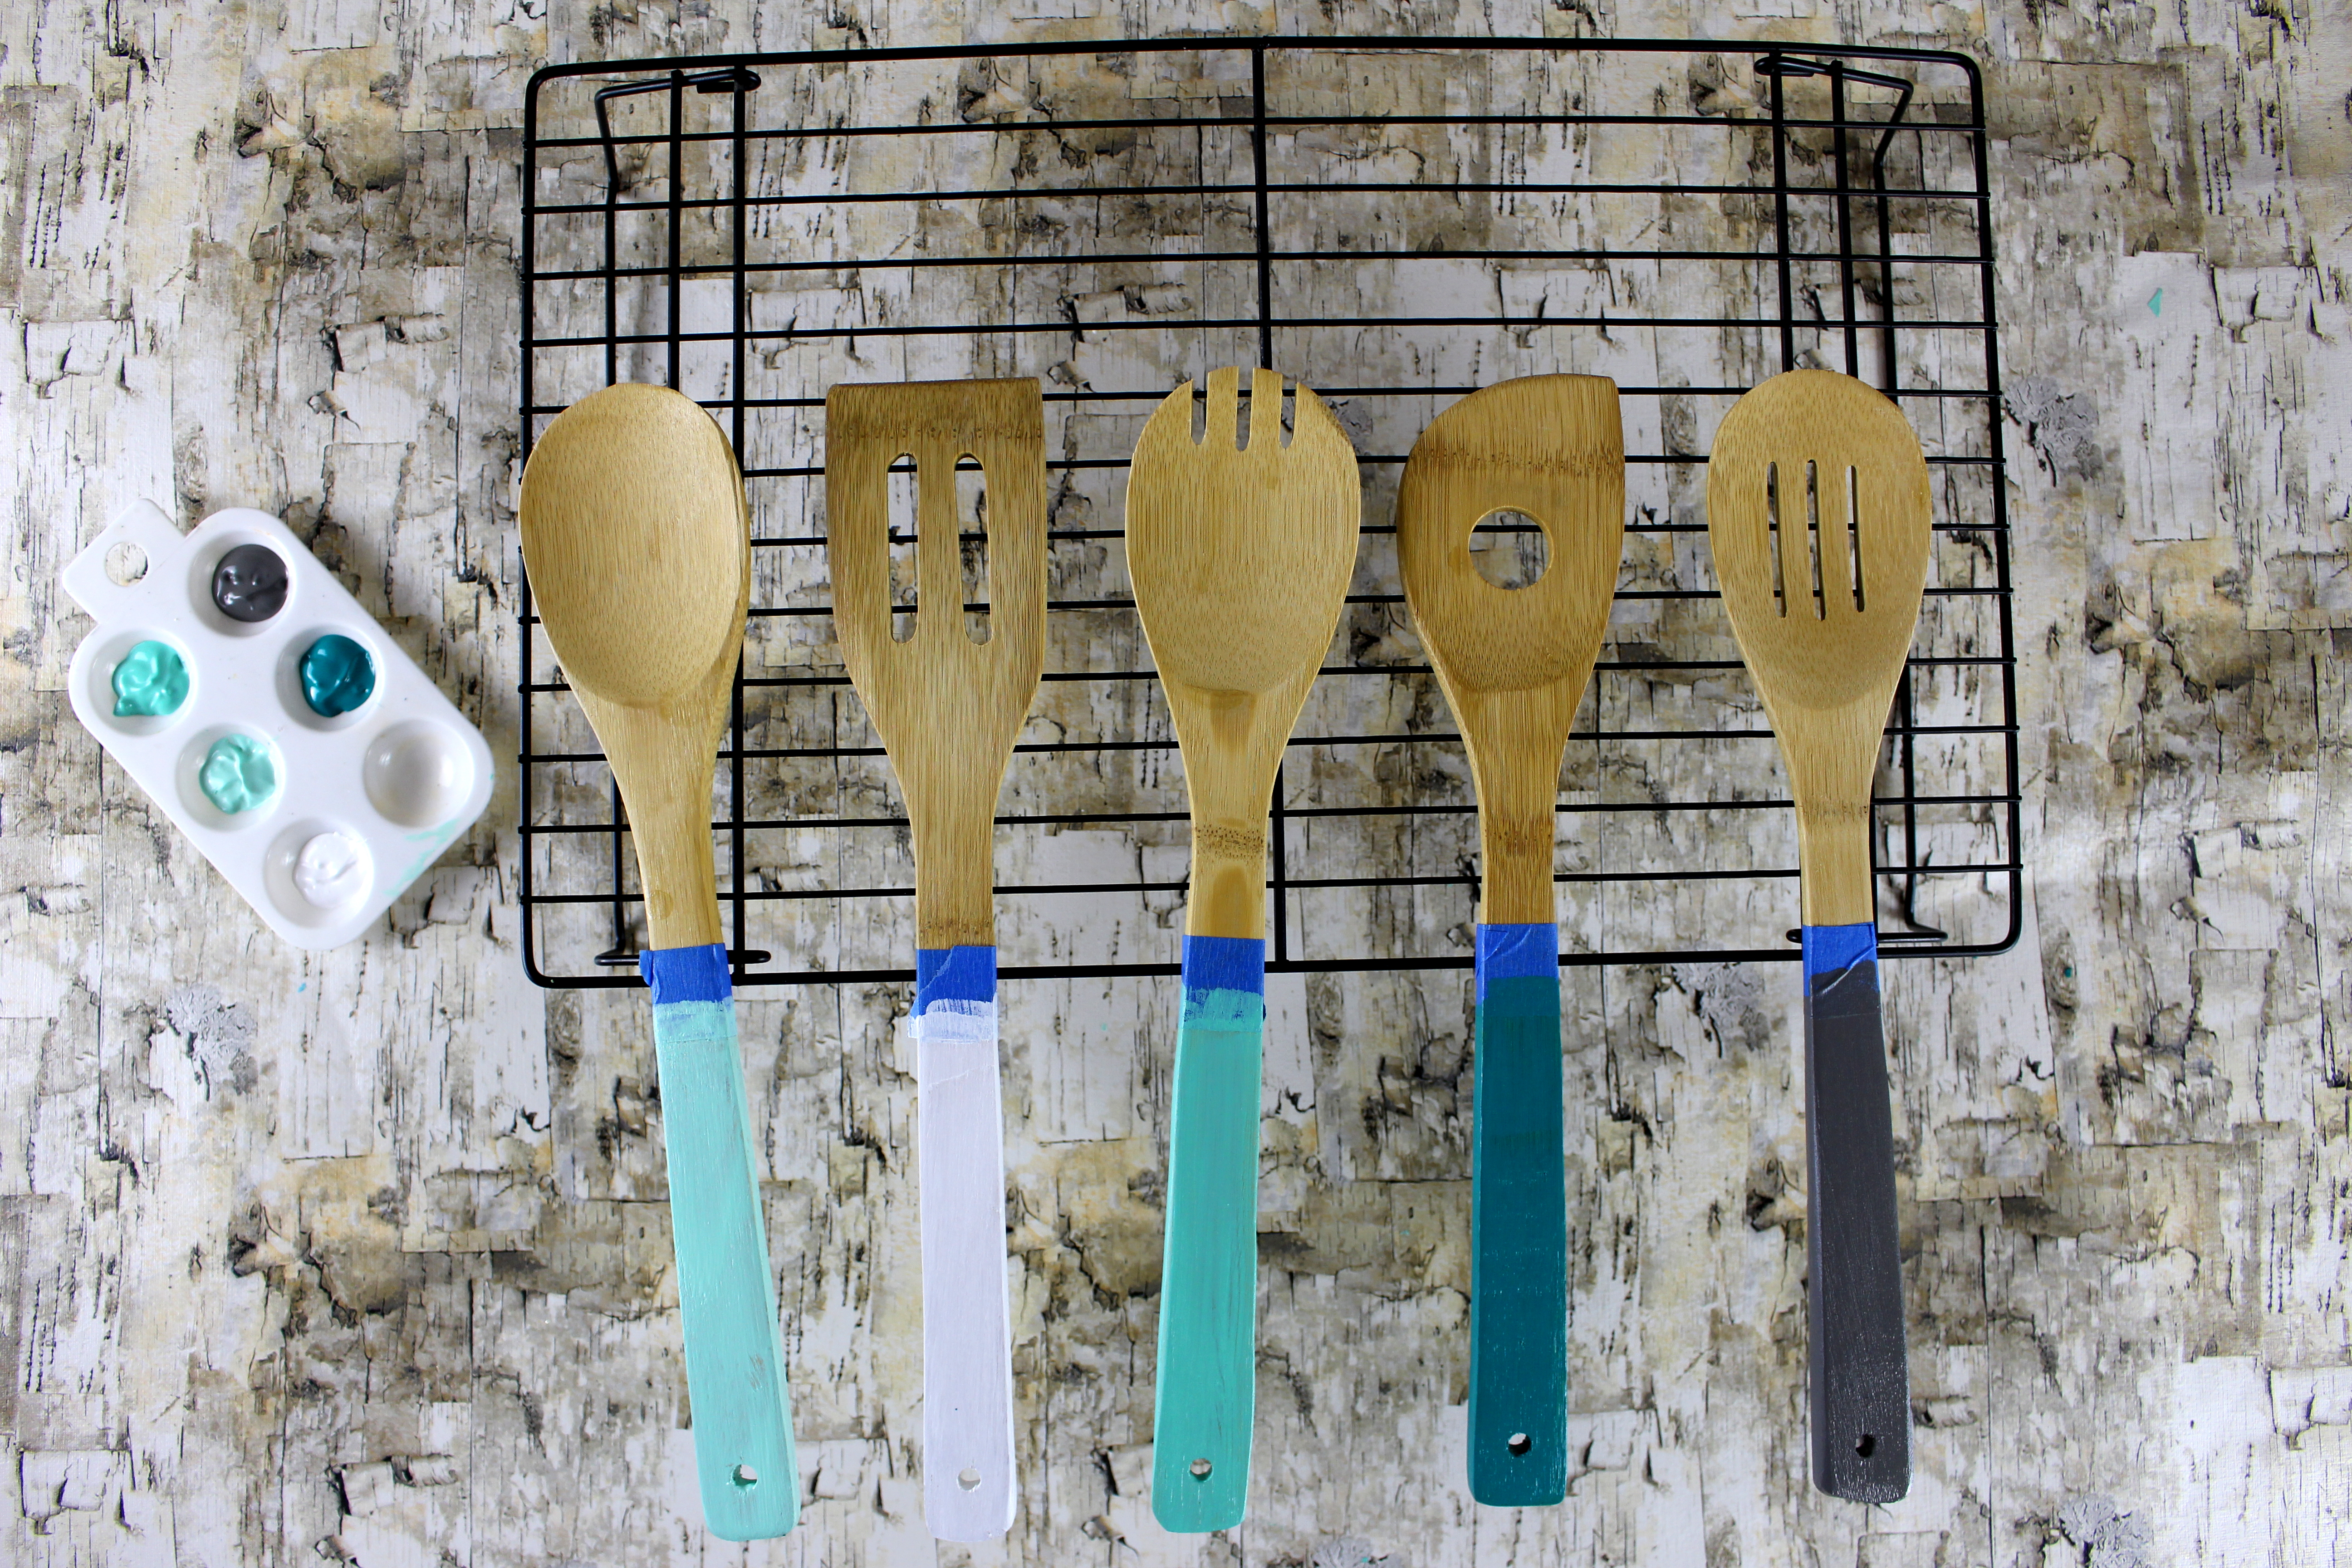 DIY Kitchen Utensils using Paint